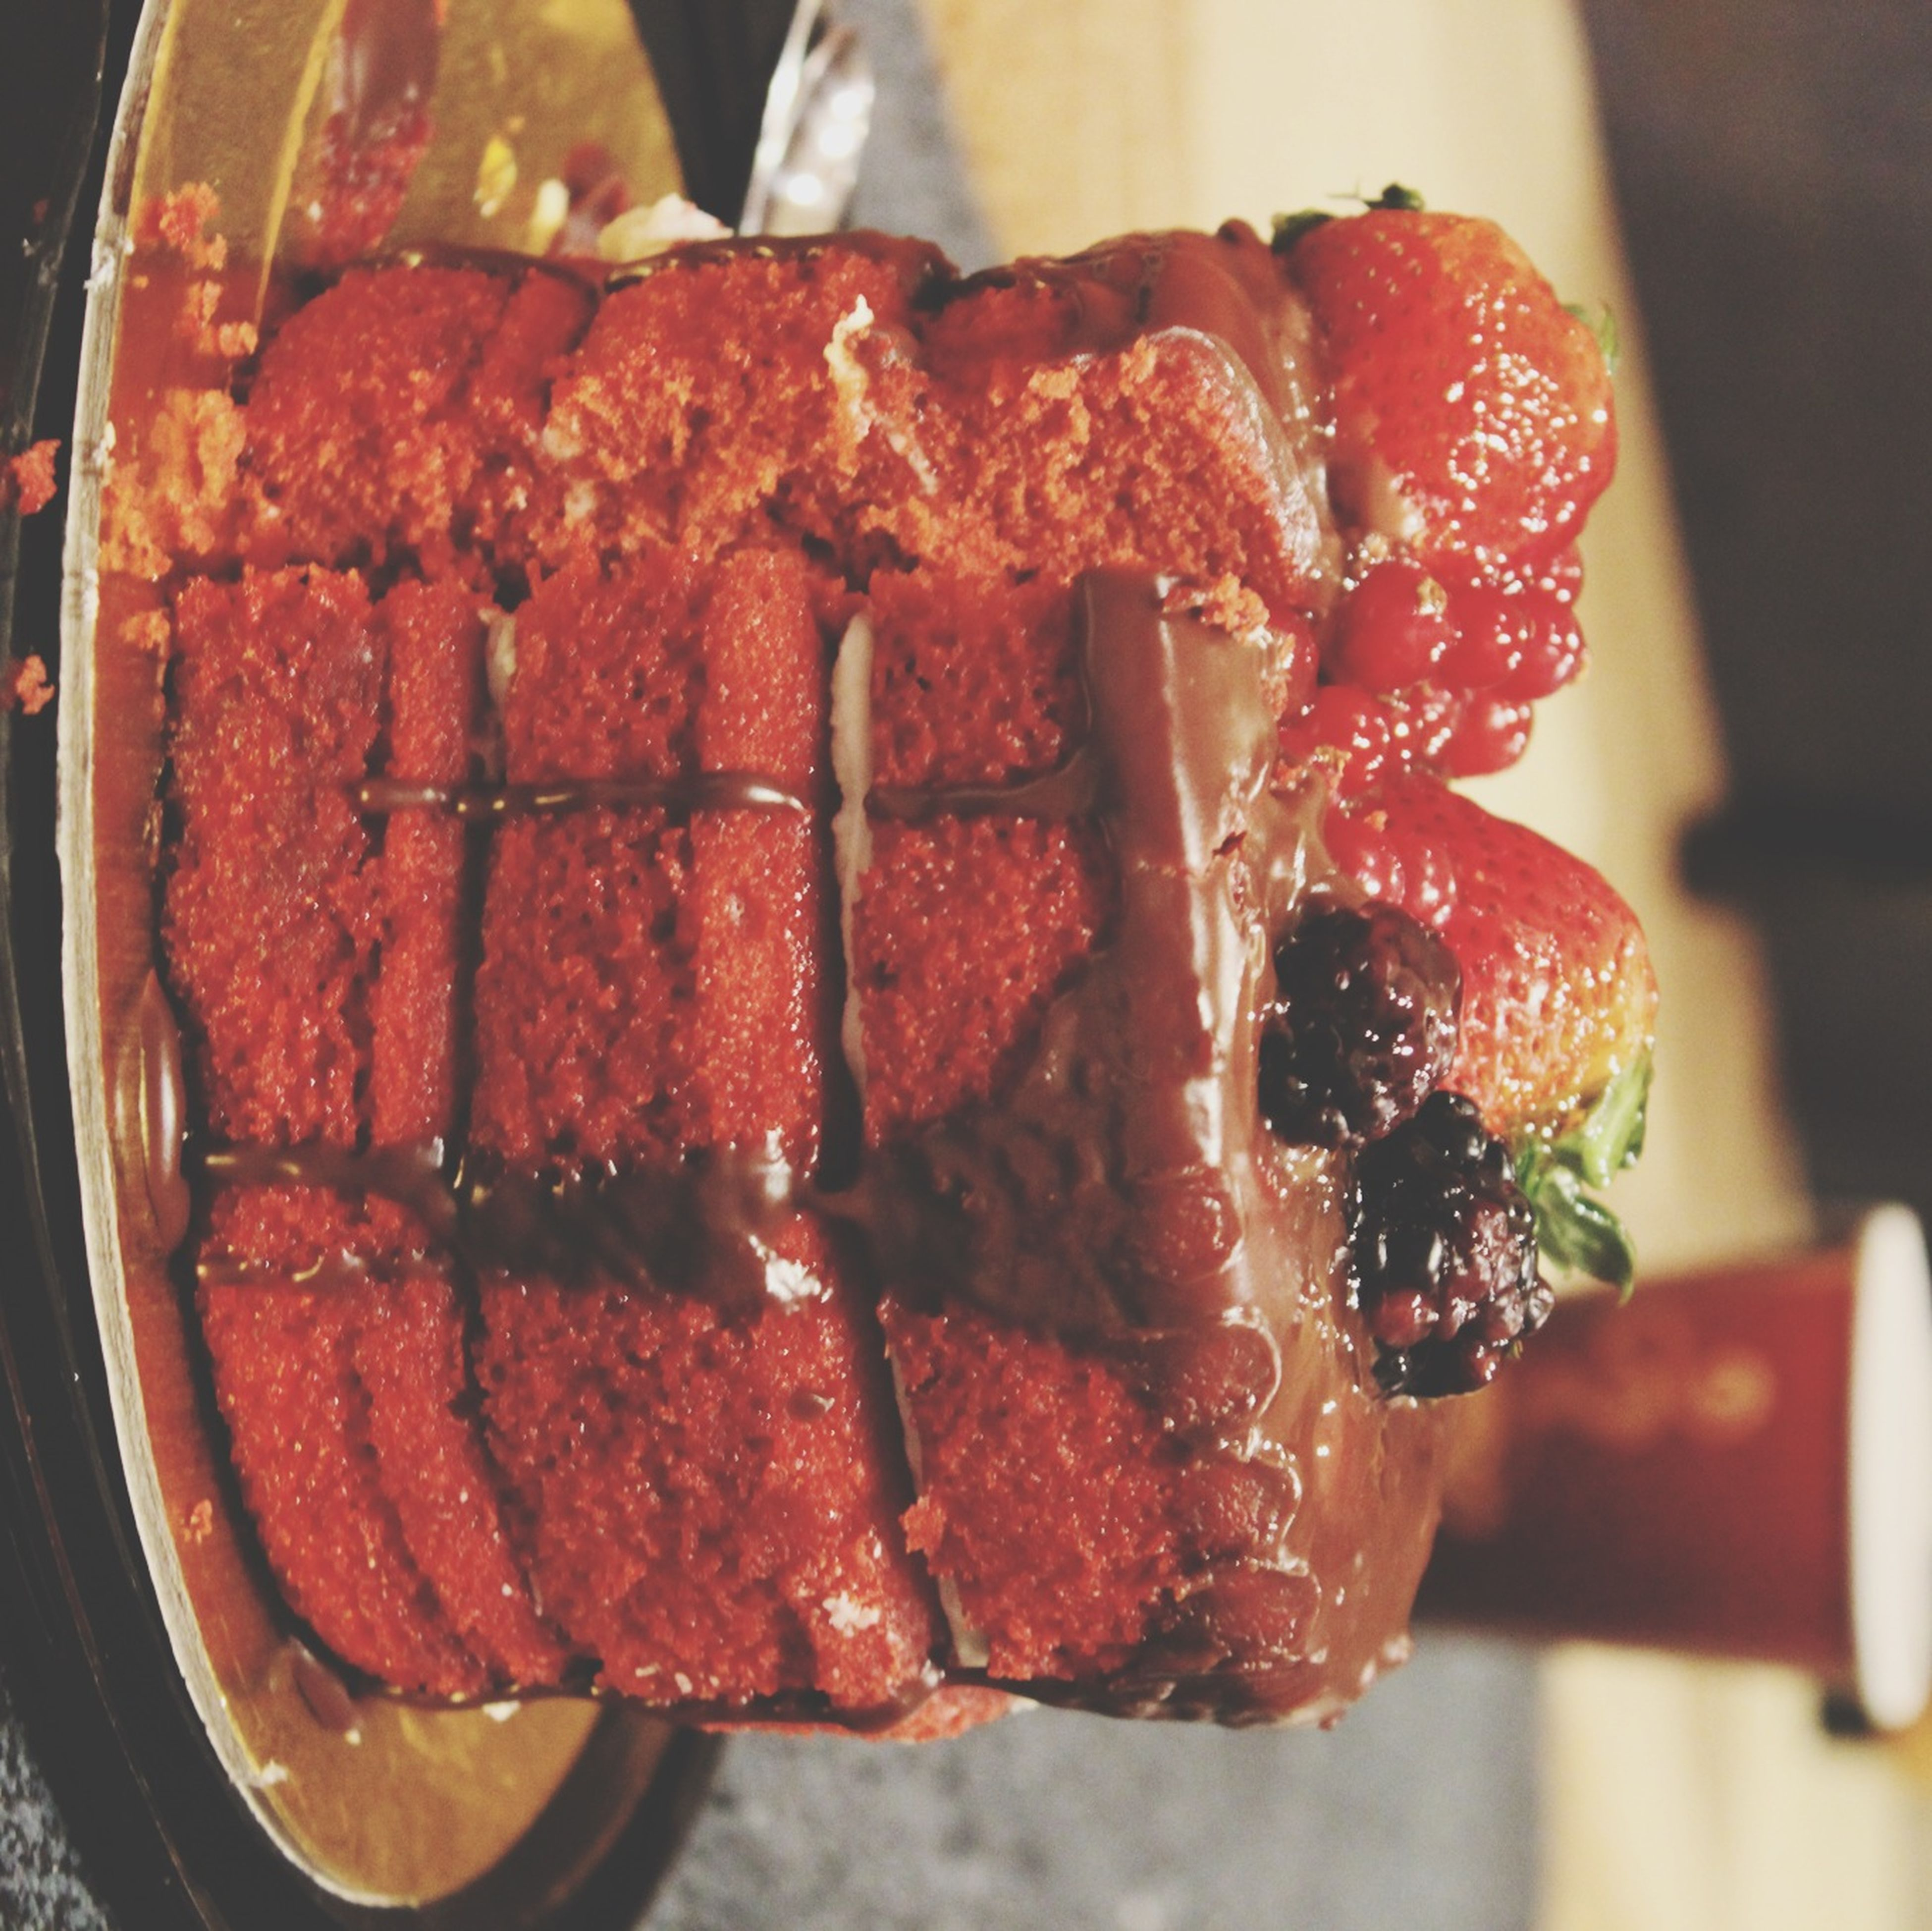 food and drink, food, indoors, freshness, ready-to-eat, unhealthy eating, indulgence, close-up, sweet food, still life, dessert, plate, focus on foreground, temptation, table, slice, cake, red, one person